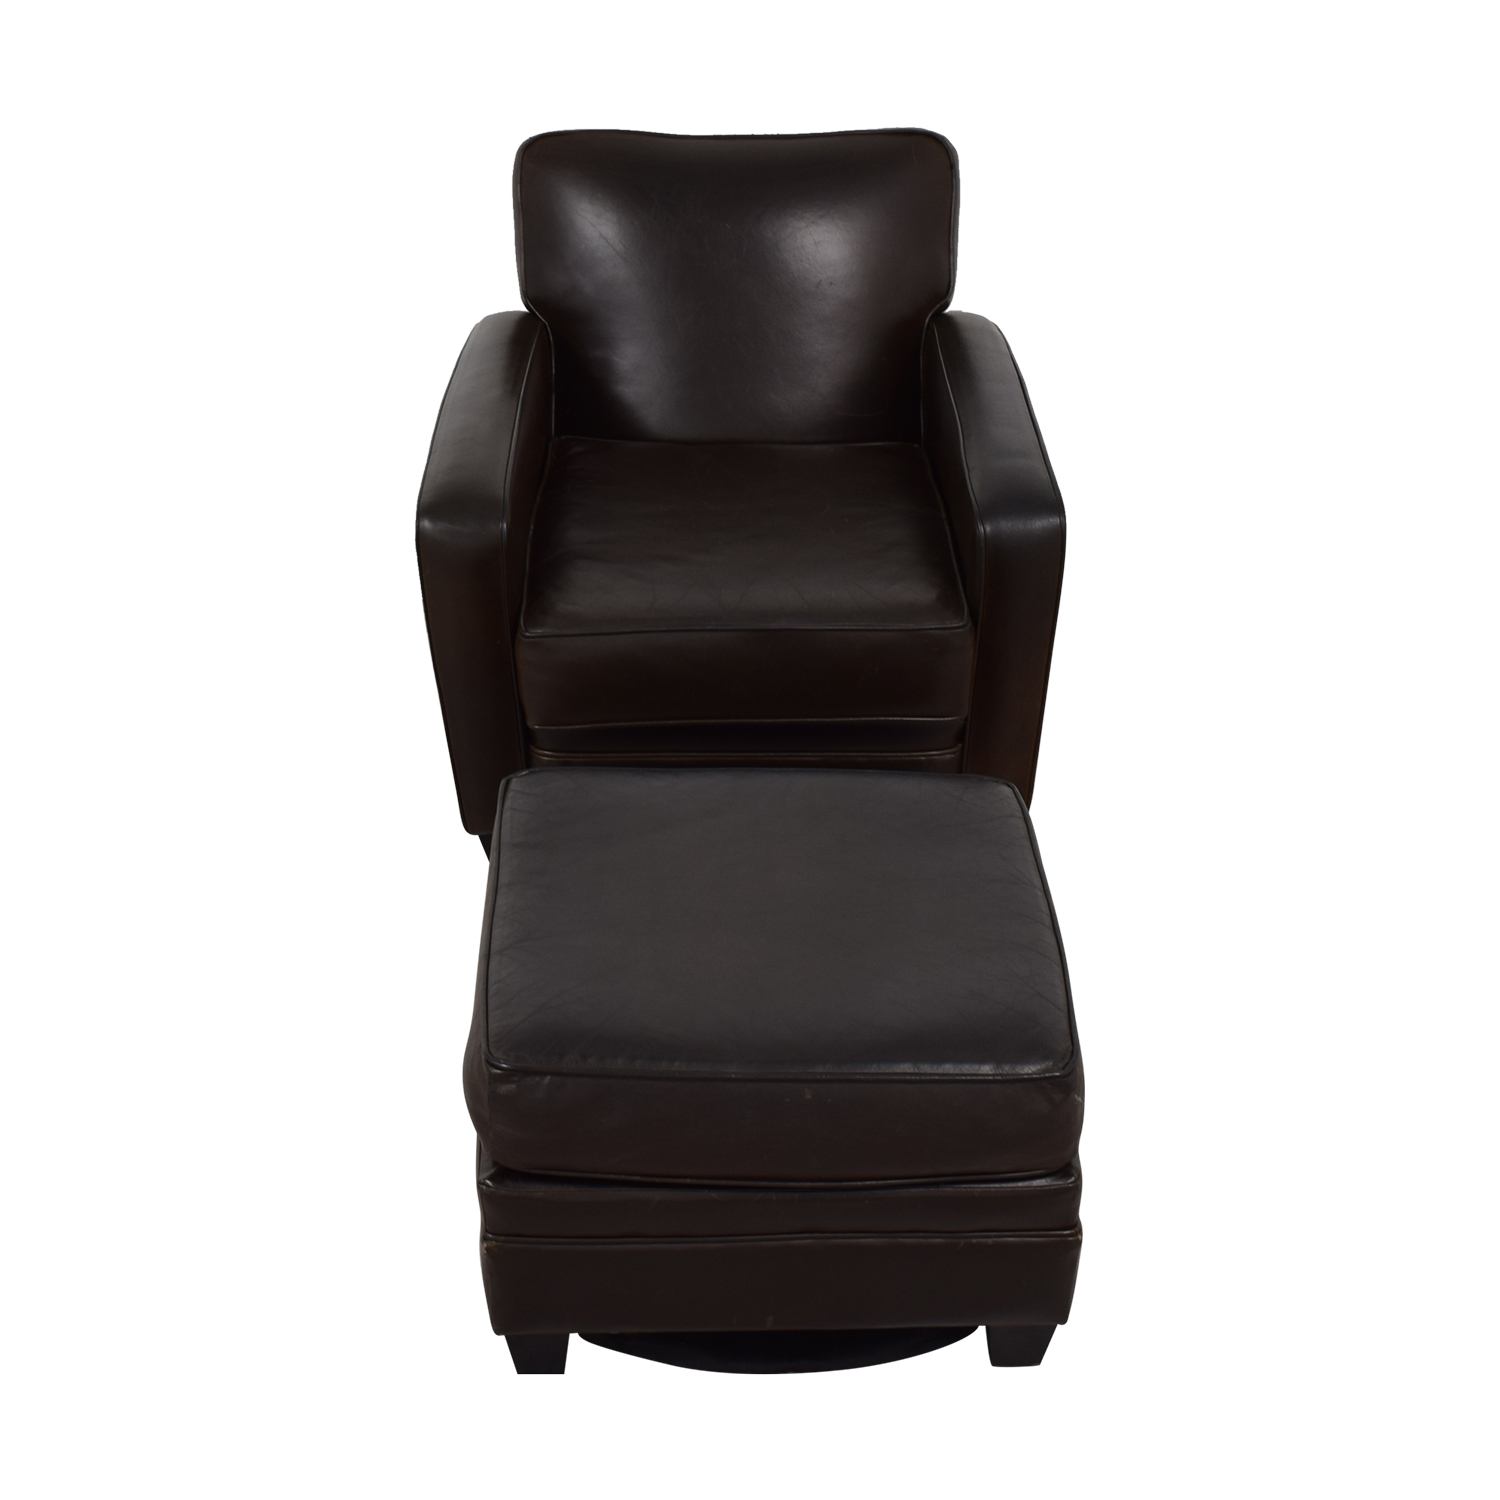 Incredible 86 Off Brown Leather Chair And Ottoman Chairs Machost Co Dining Chair Design Ideas Machostcouk